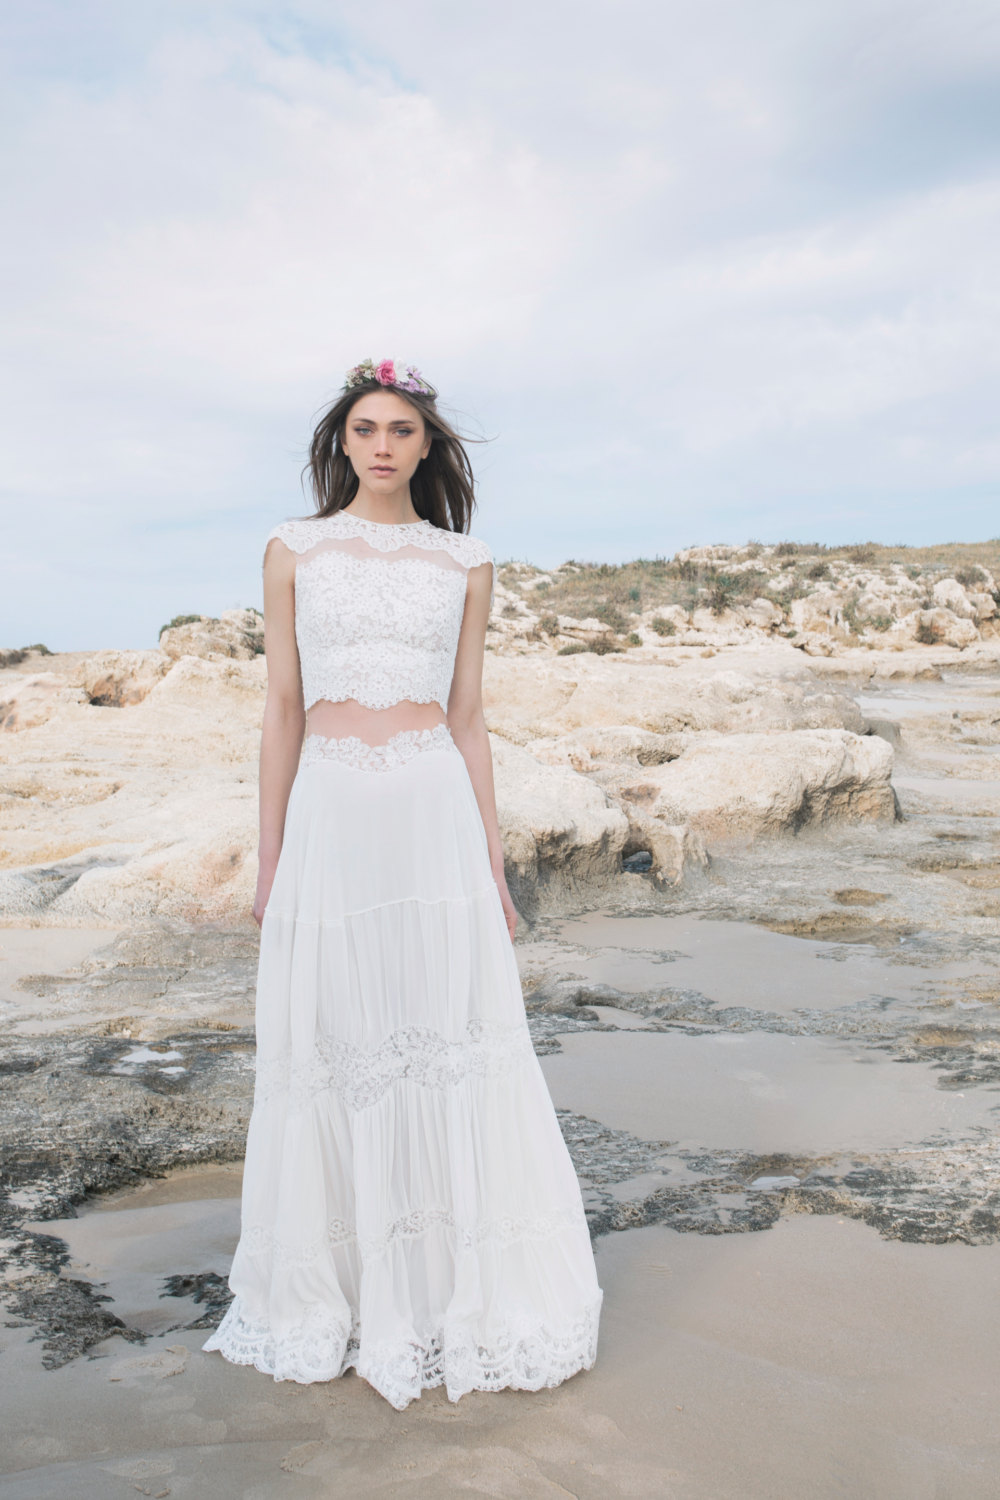 TwoPiece Wedding Dresses for the NonTraditional Bride